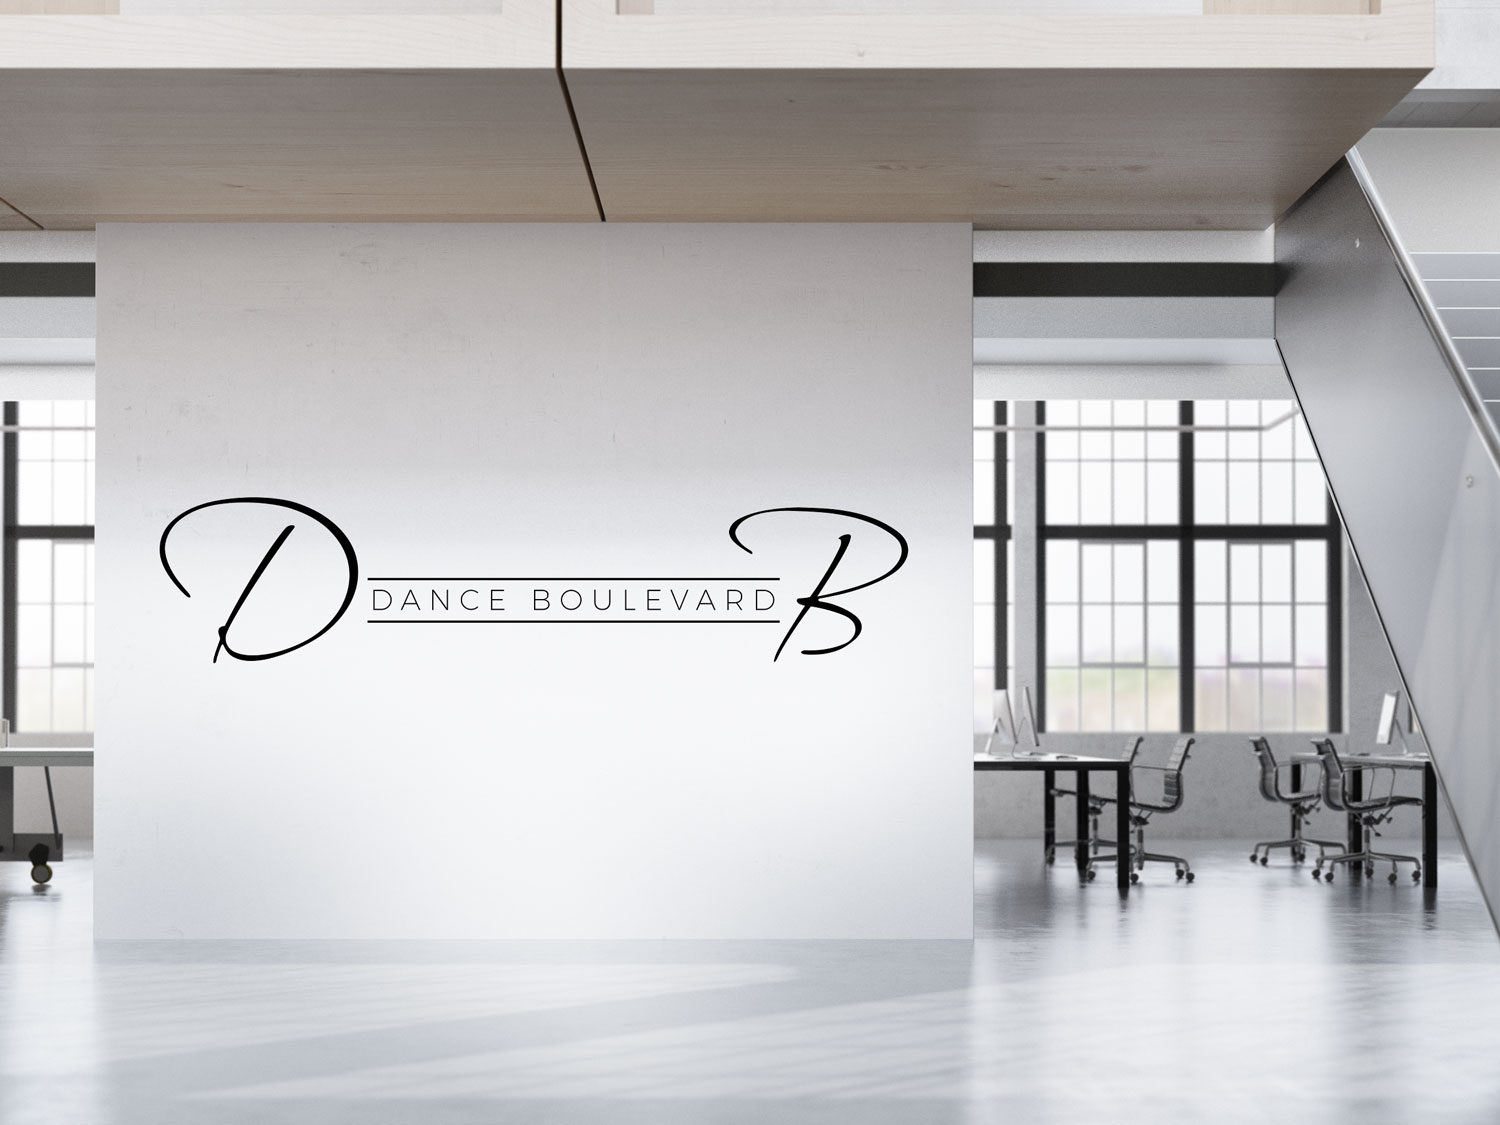 Elegant Modern Dance Studio Logo Design For The Initials Db In Bigger Letters Dance Boulevard In Smaller Letters By Gates M Design 14314421